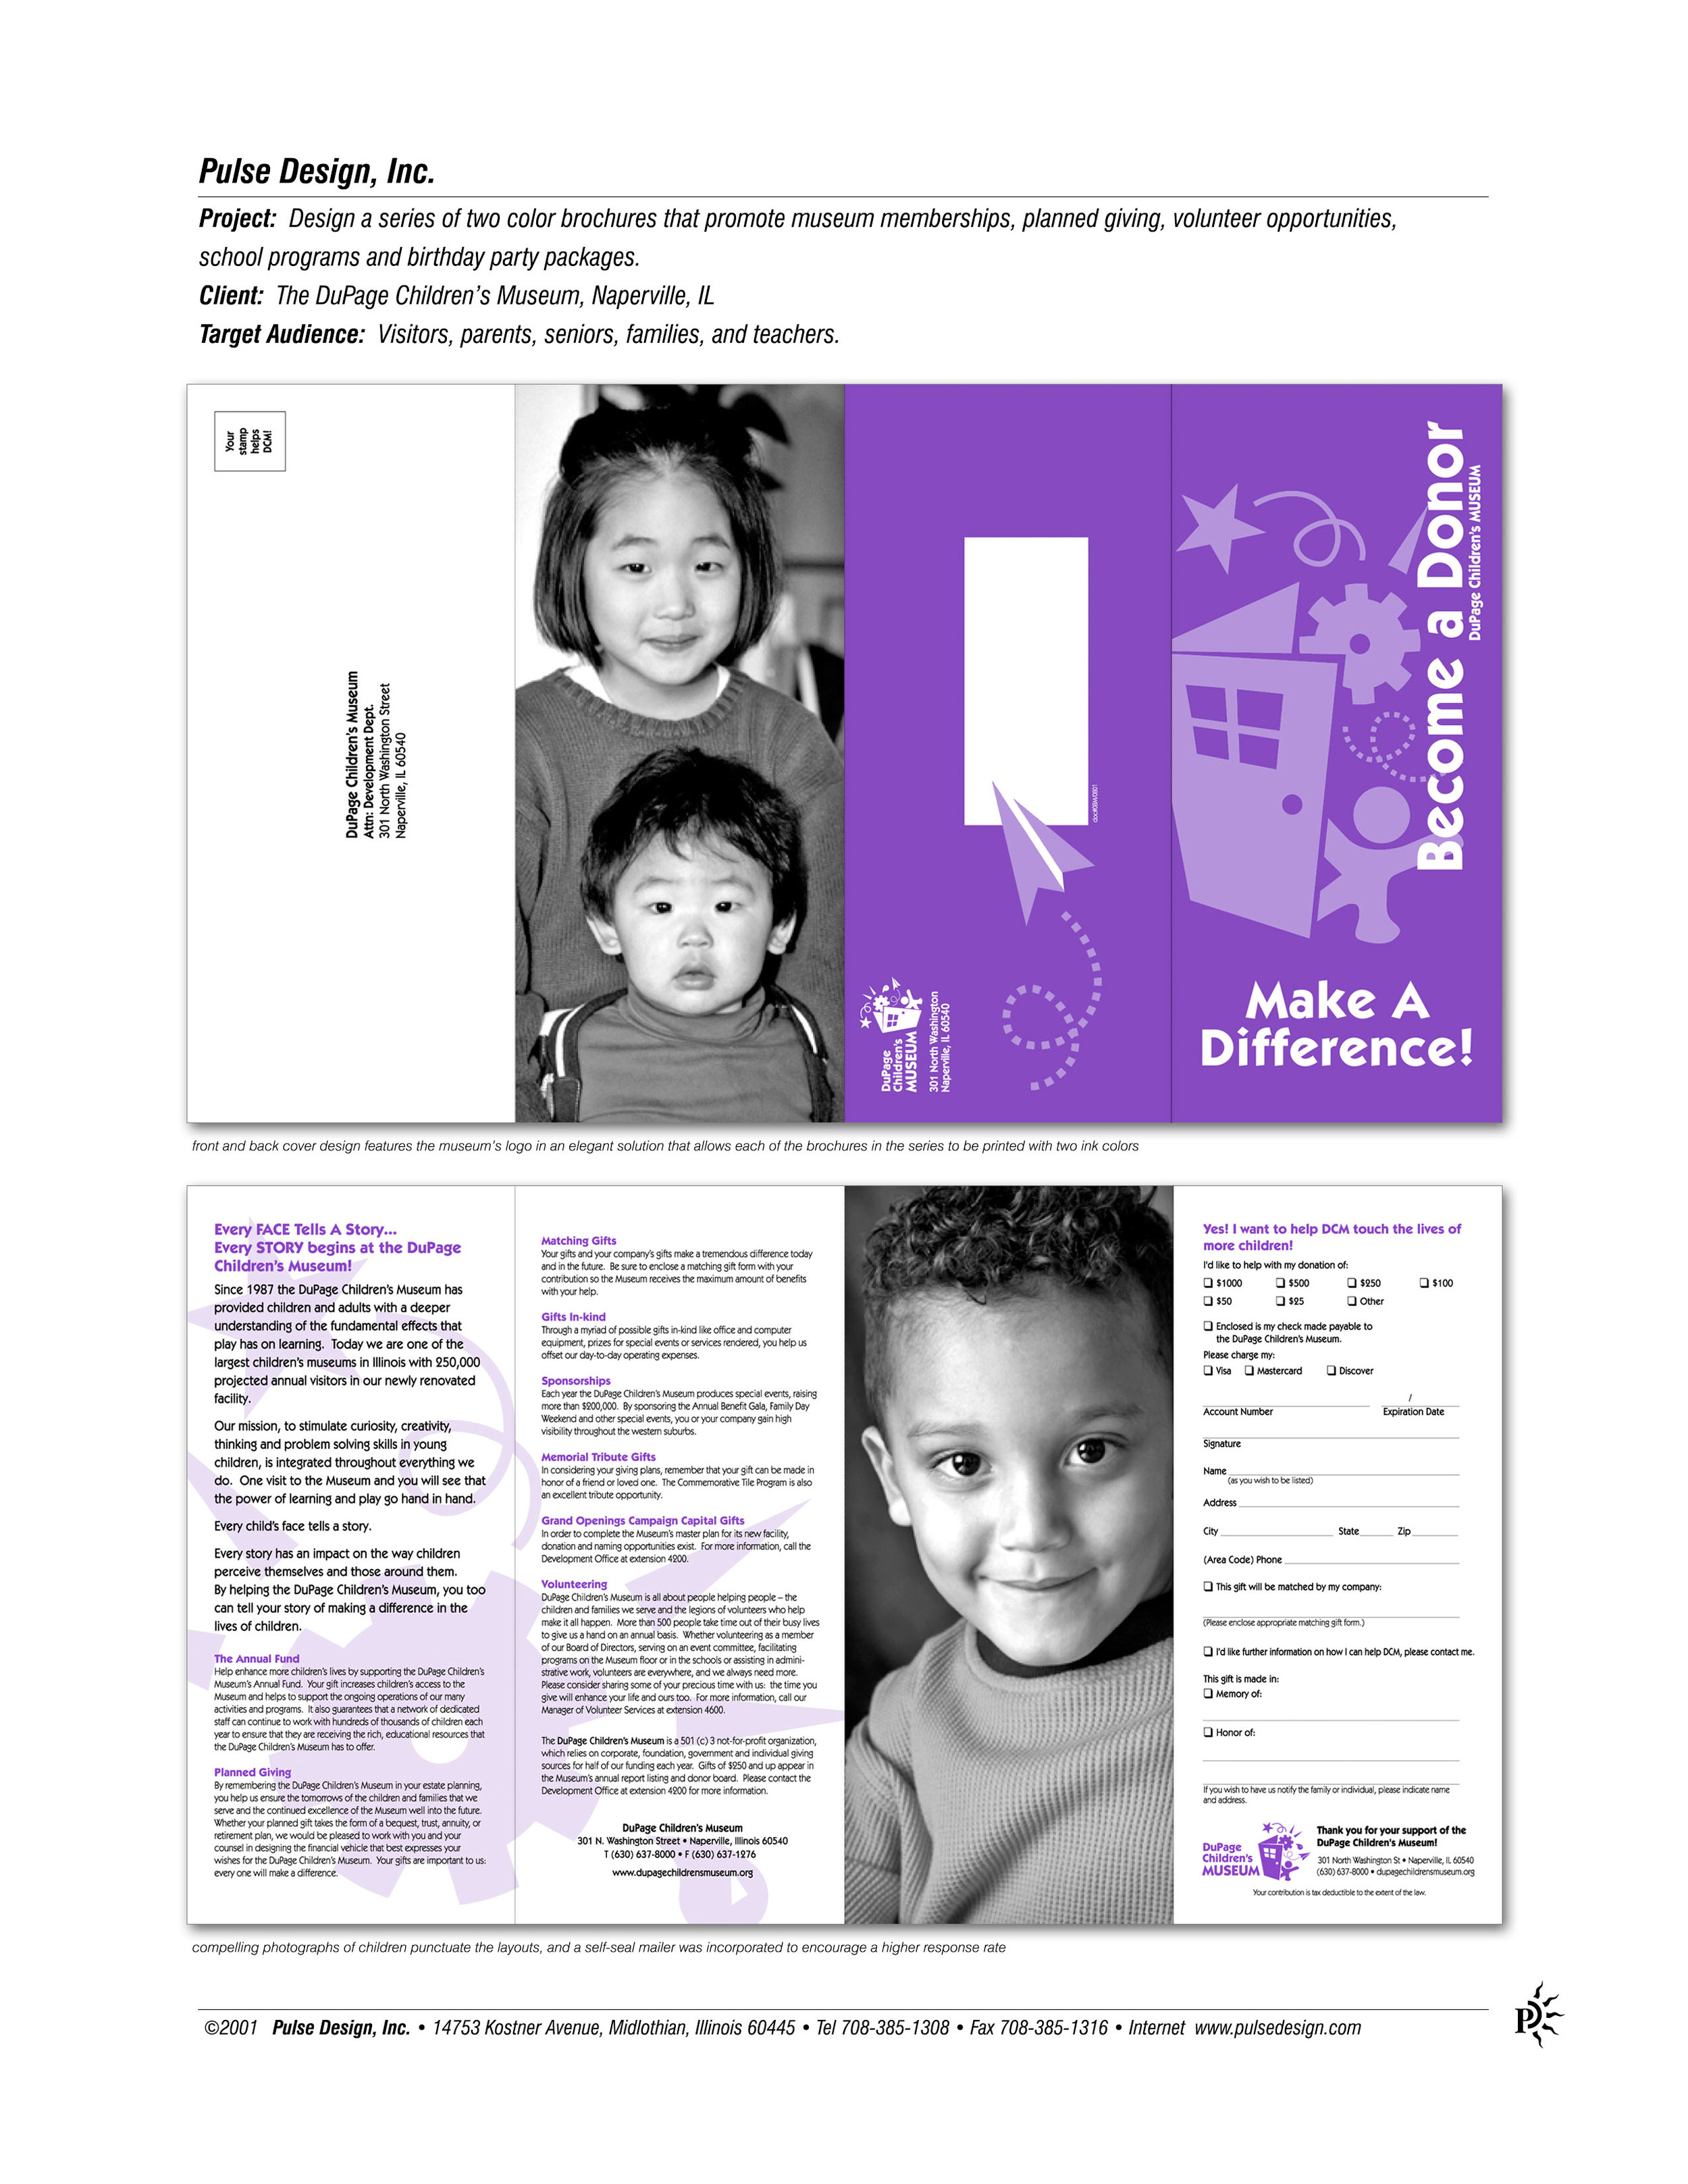 DCM-Brochure-2Color-Donor-Pulse-Design-Inc.jpg